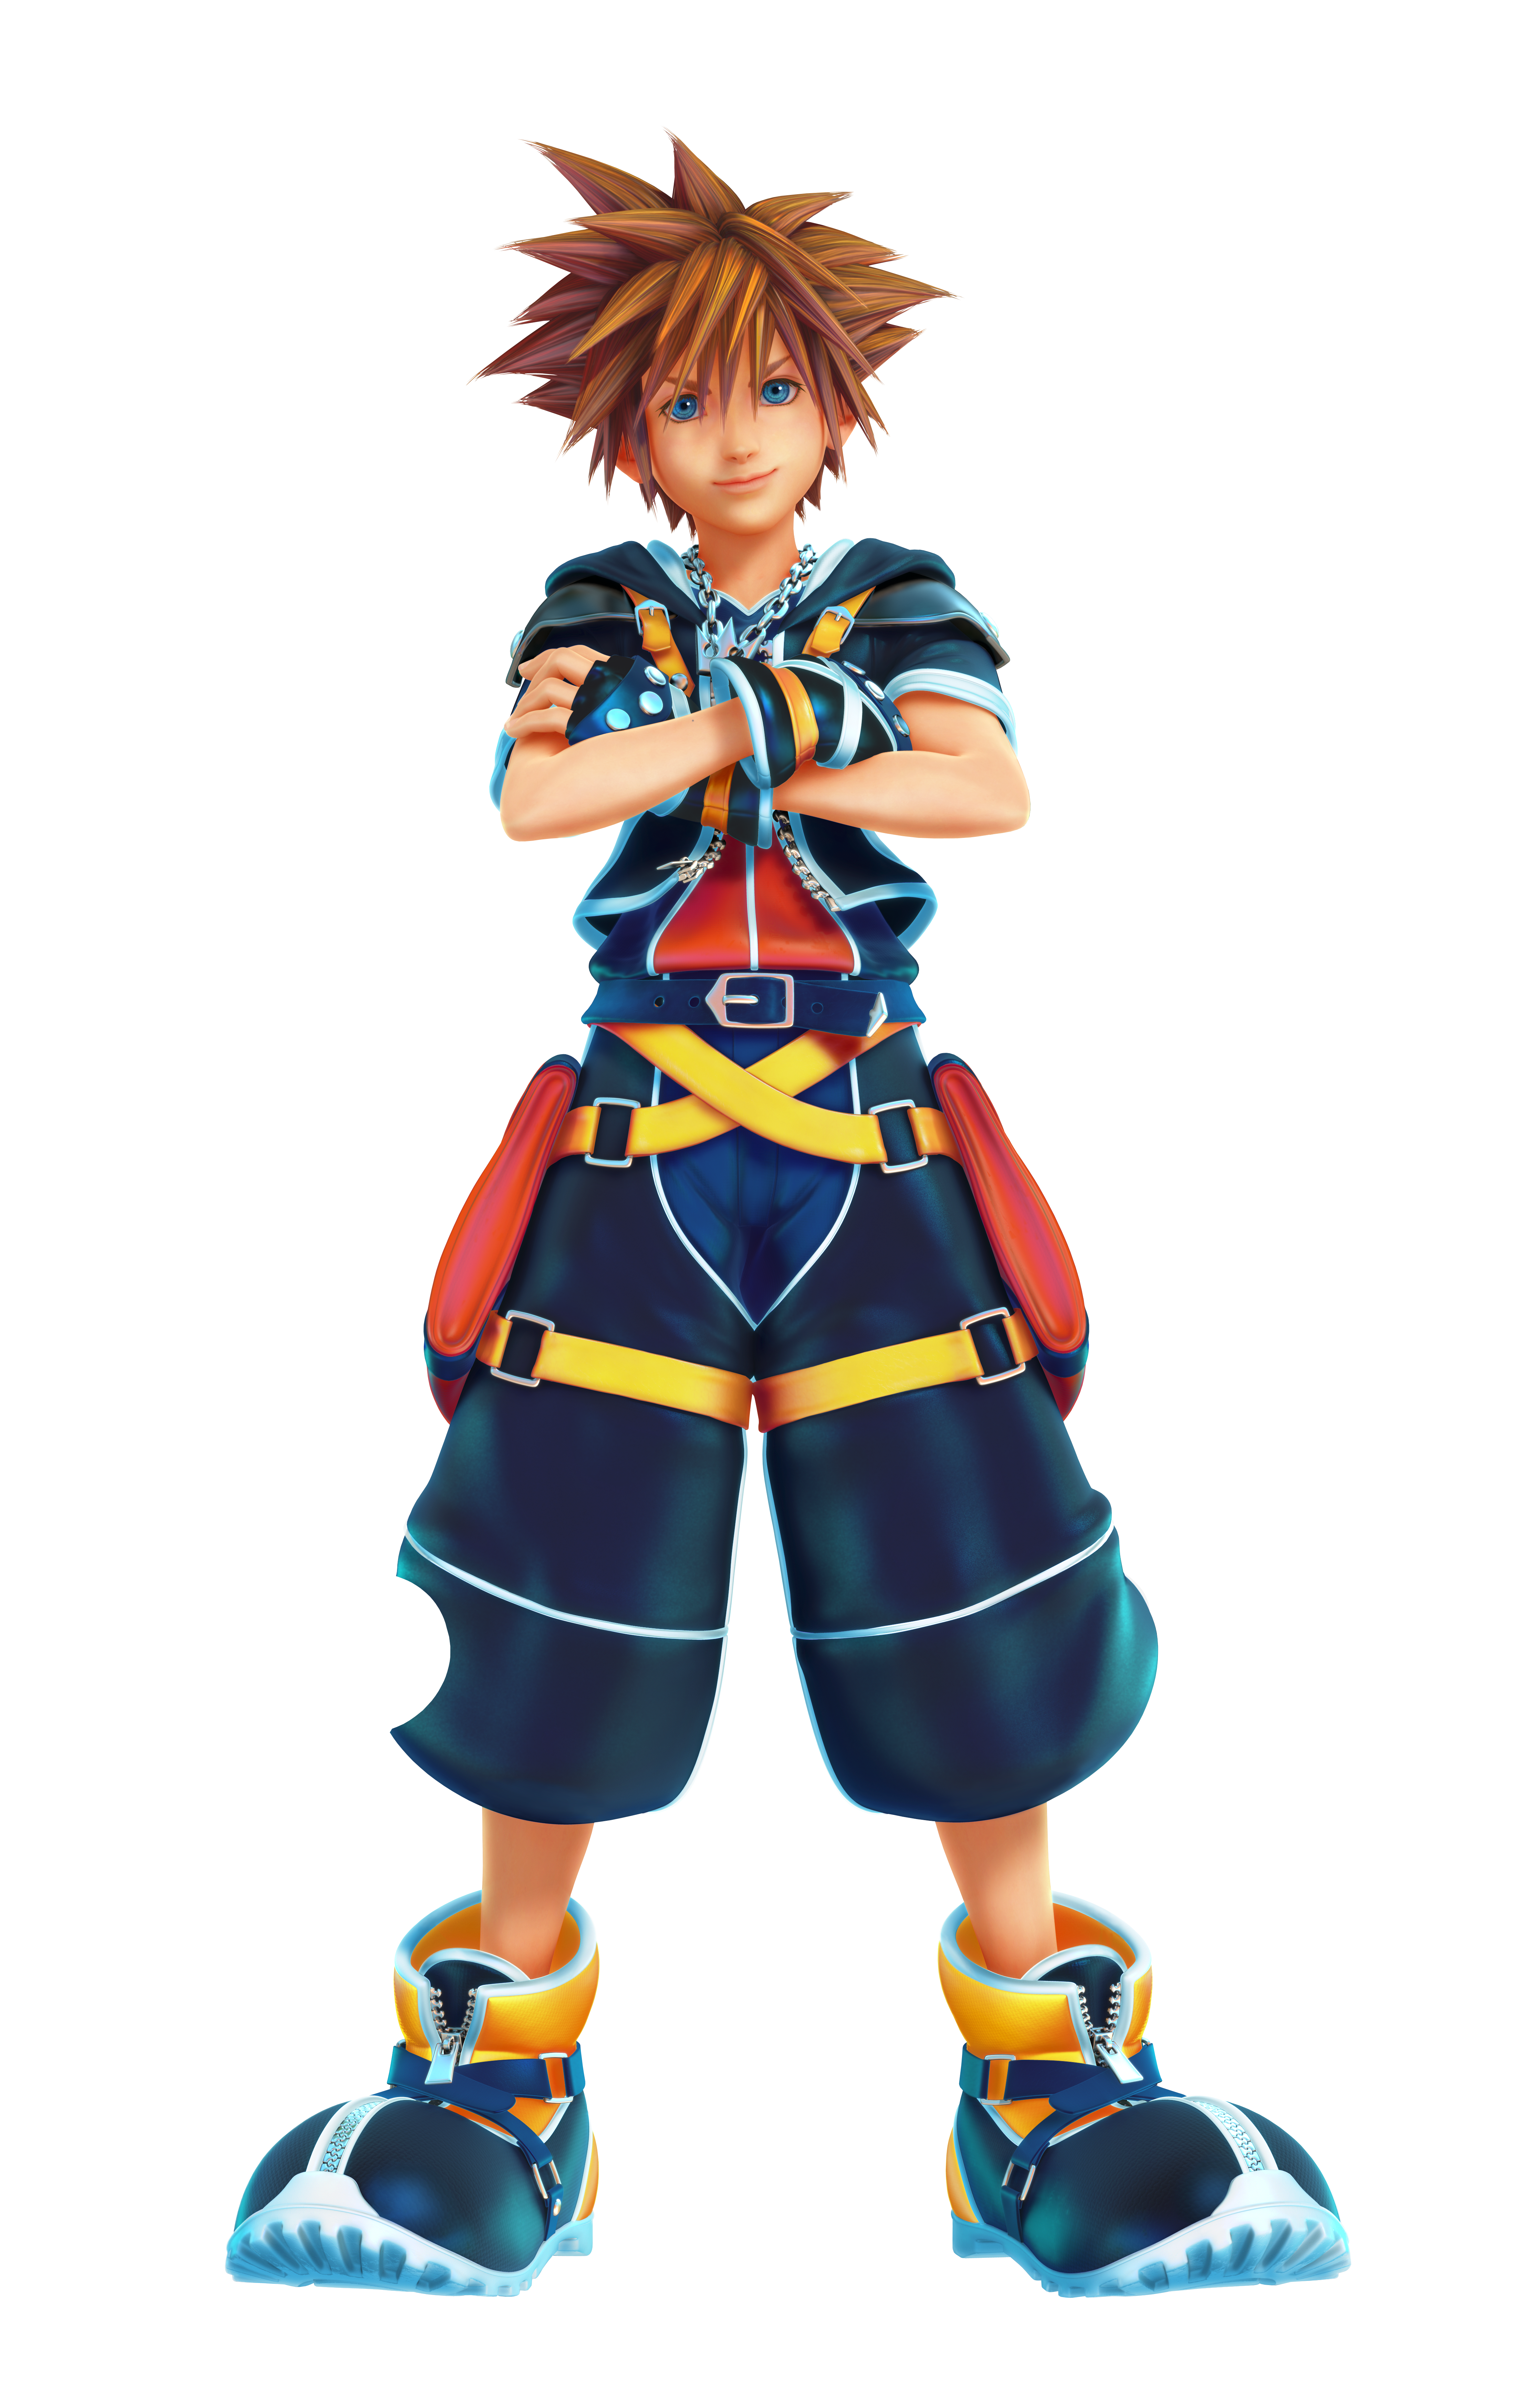 Kingdom Hearts clipart #20, Download drawings